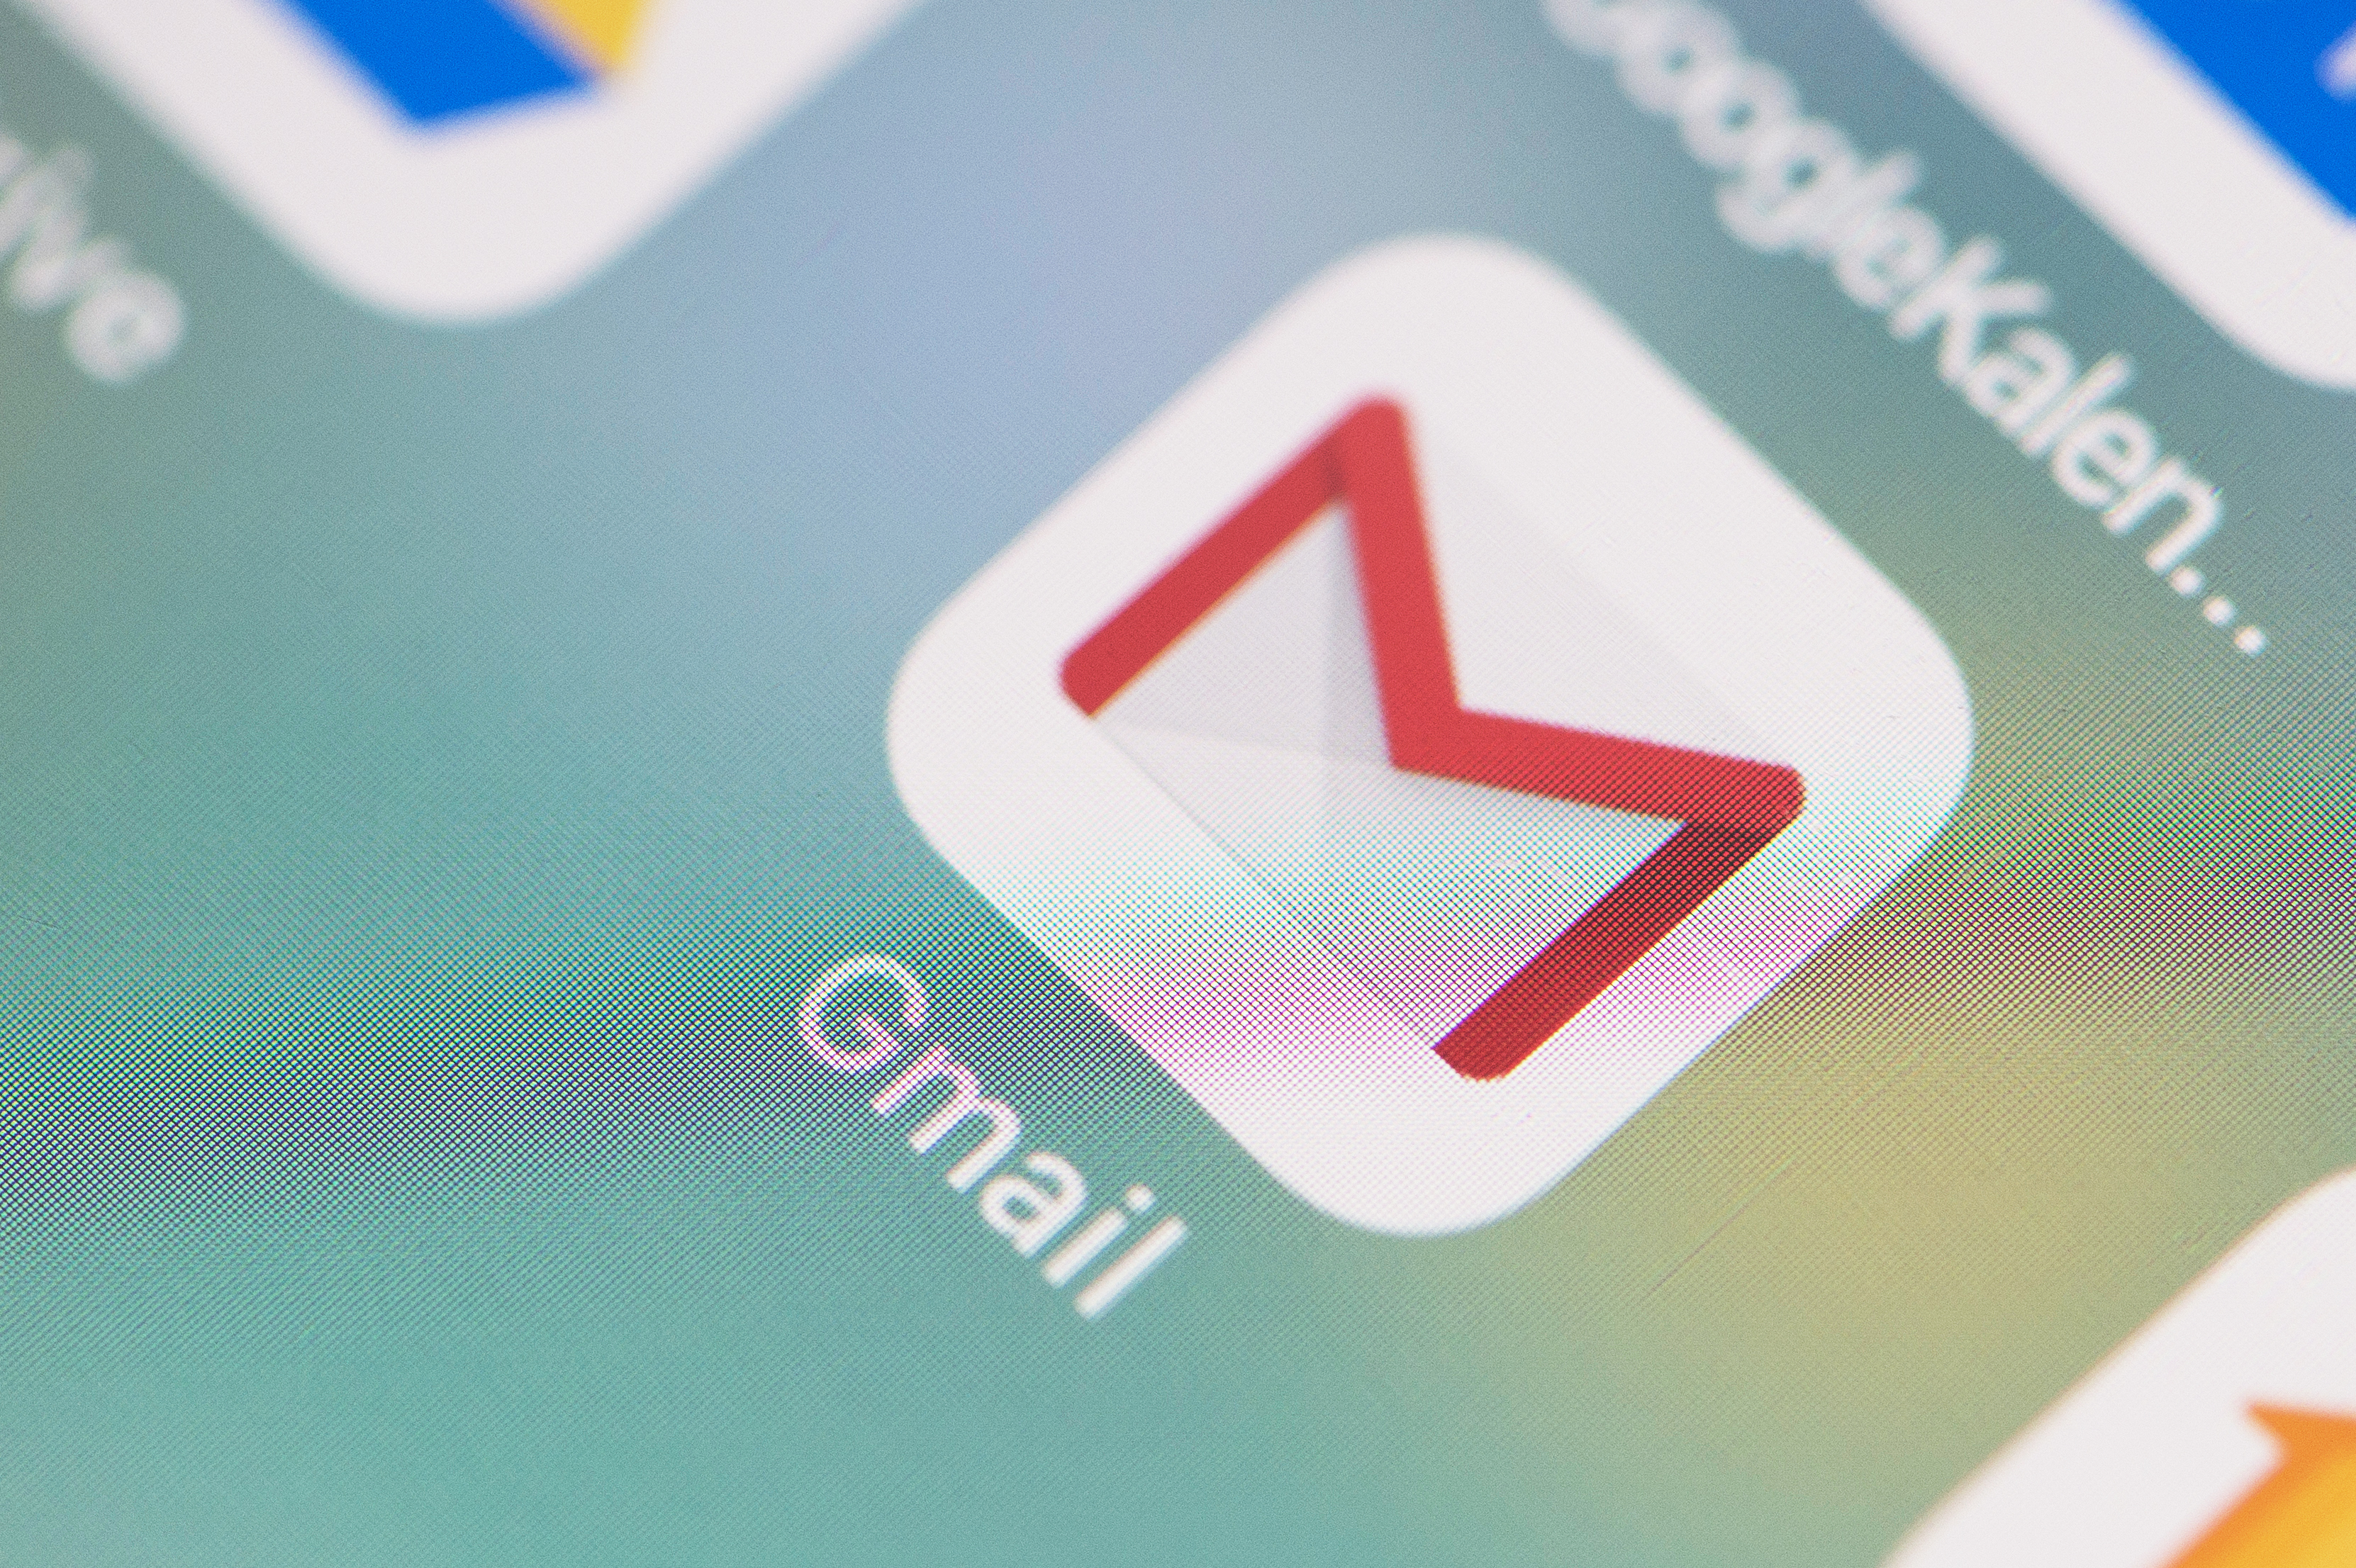 Google is removing gender pronouns from Gmail's AI. Credit: PA